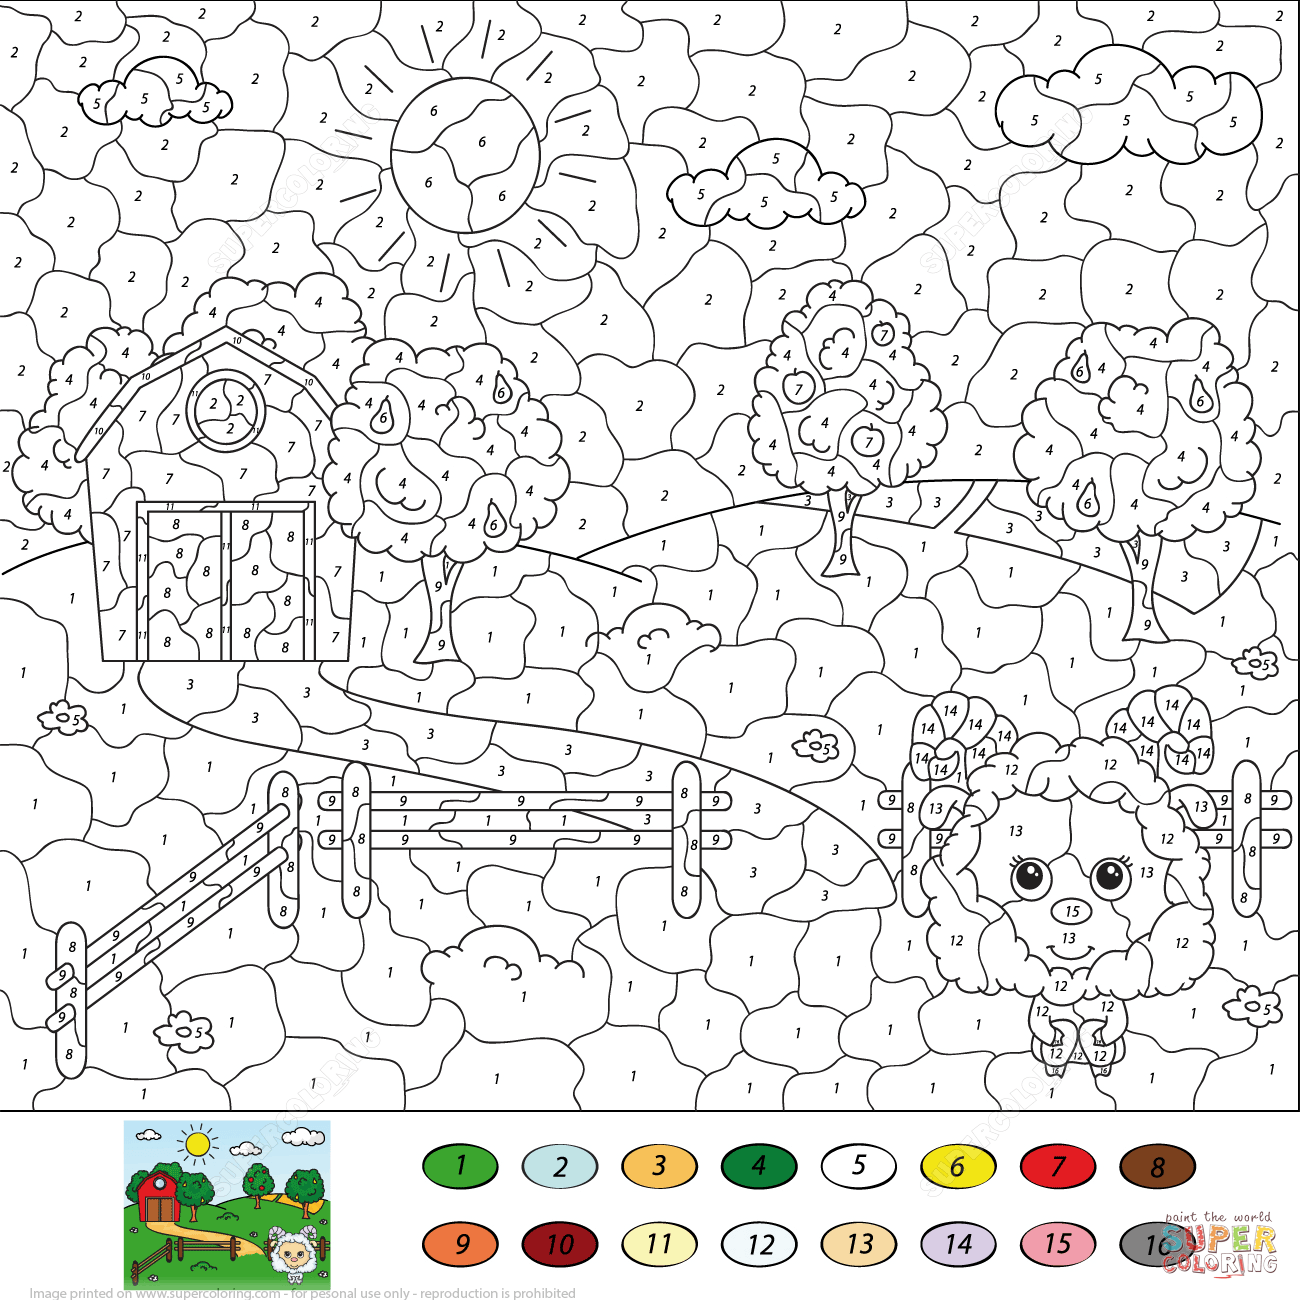 Rural Landscape Color Number Printable Coloring Pages Click The Bible Numbers For Kids Printables Winter By 5th Grade Hard Christmas Mosaic Hidden Picture Tareas [ 1300 x 1300 Pixel ]